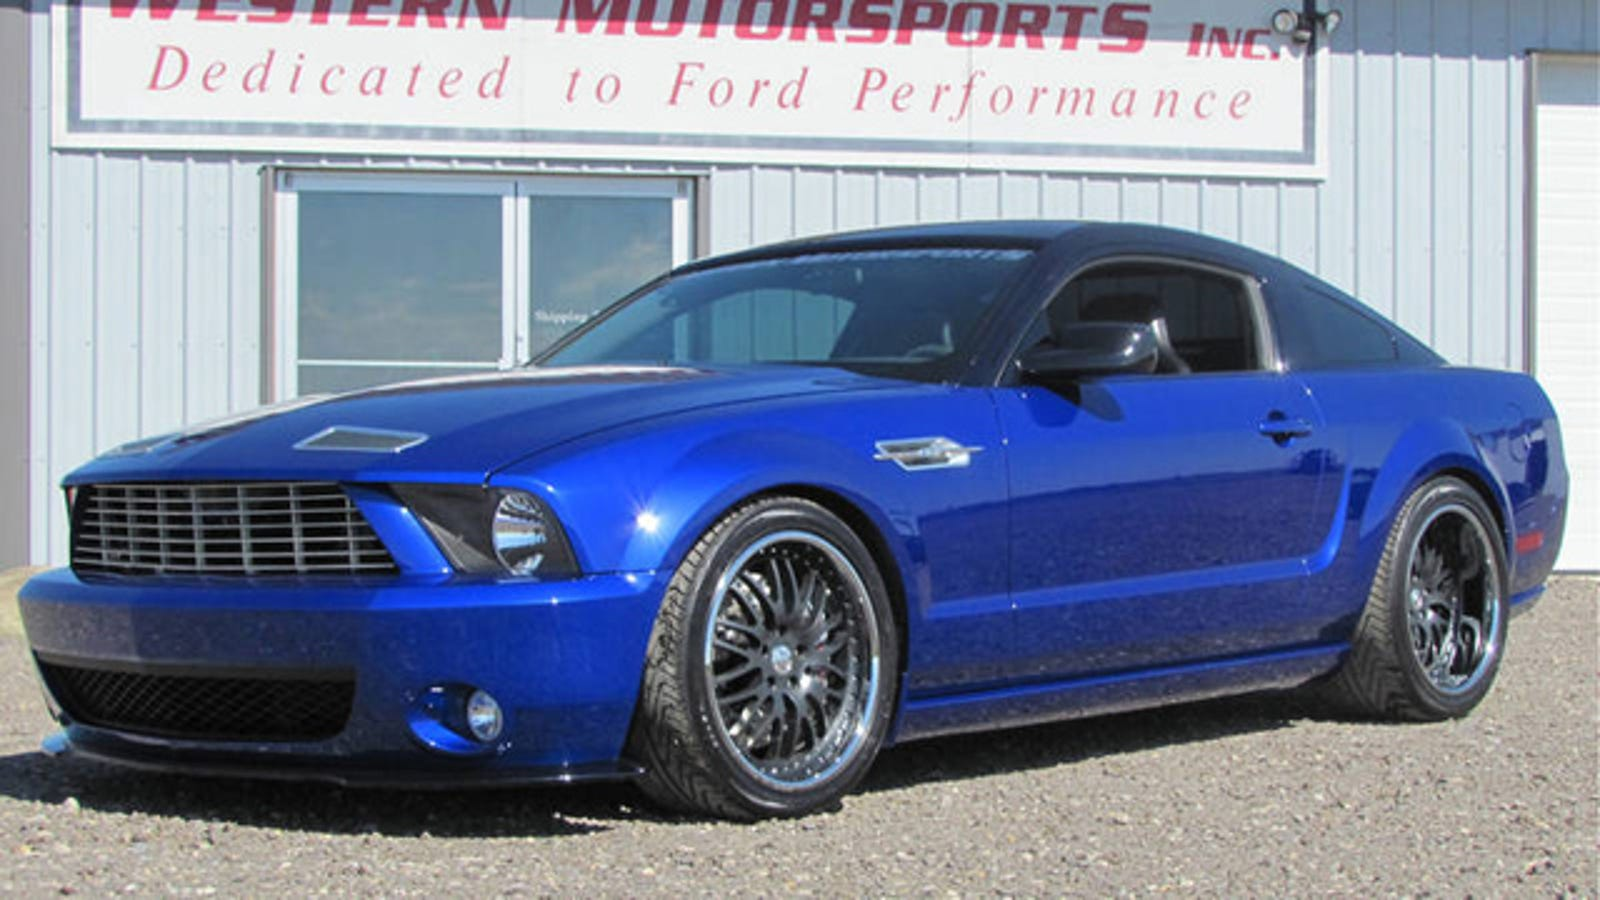 Your chance to purchase a ford mustang with the v12 heart of an